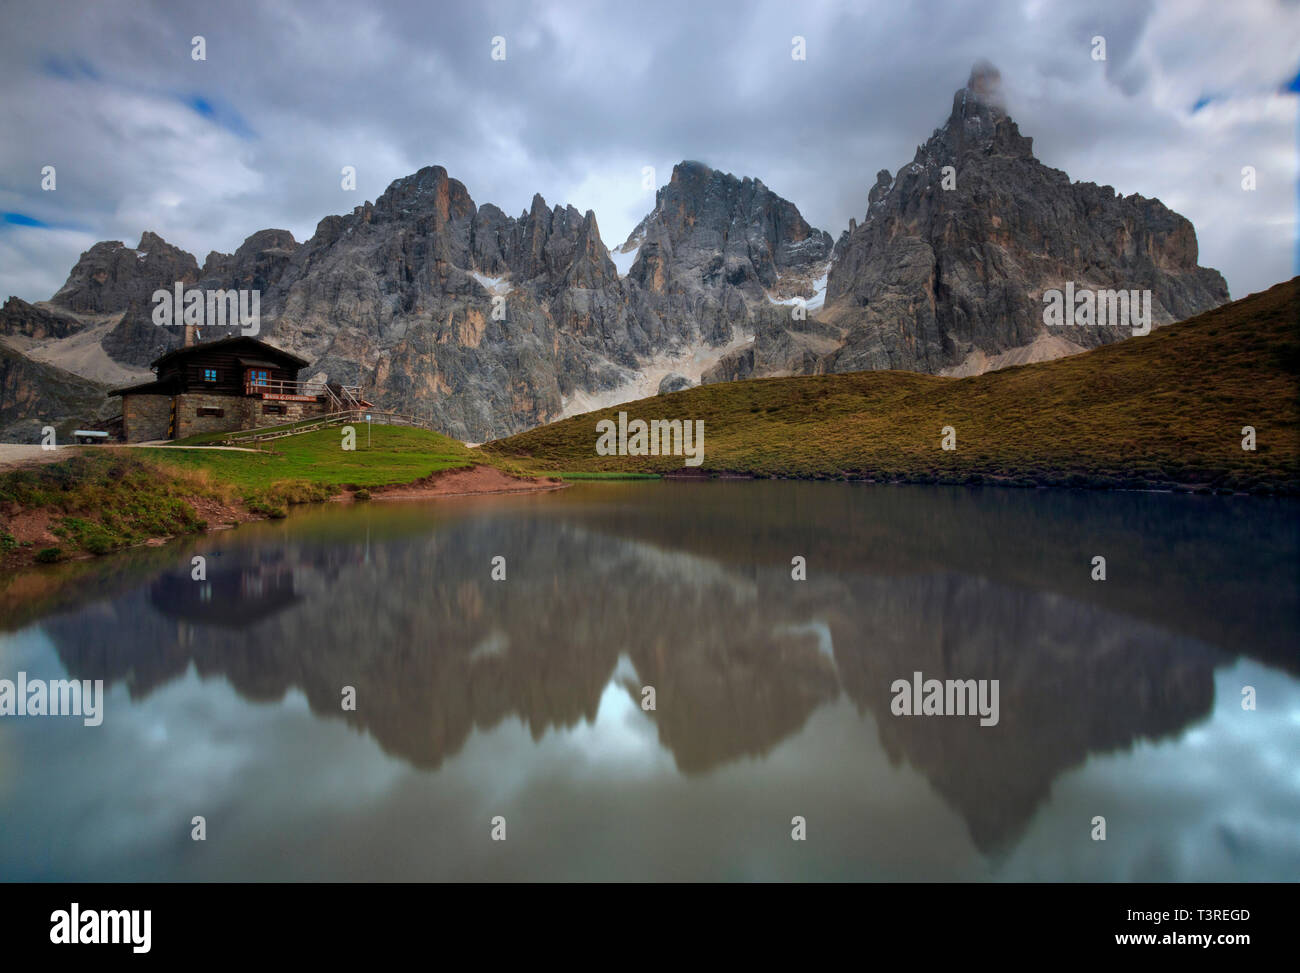 The whole range of the Pale di San Martino, one of the most famous and beautiful groups of the Dolomites, reflected in the waters of a small lake near Stock Photo